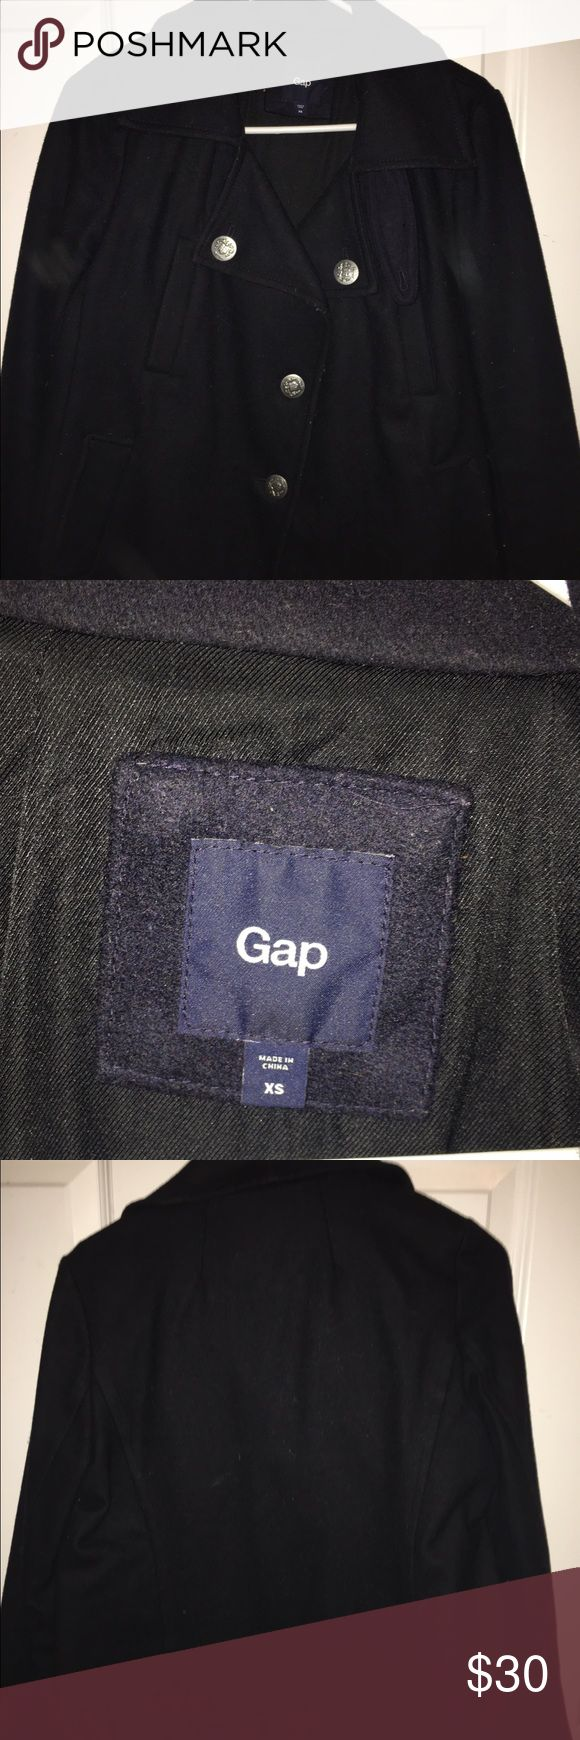 Navy blue Gap coat Navy blue Gap coat GAP Jackets & Coats Pea Coats